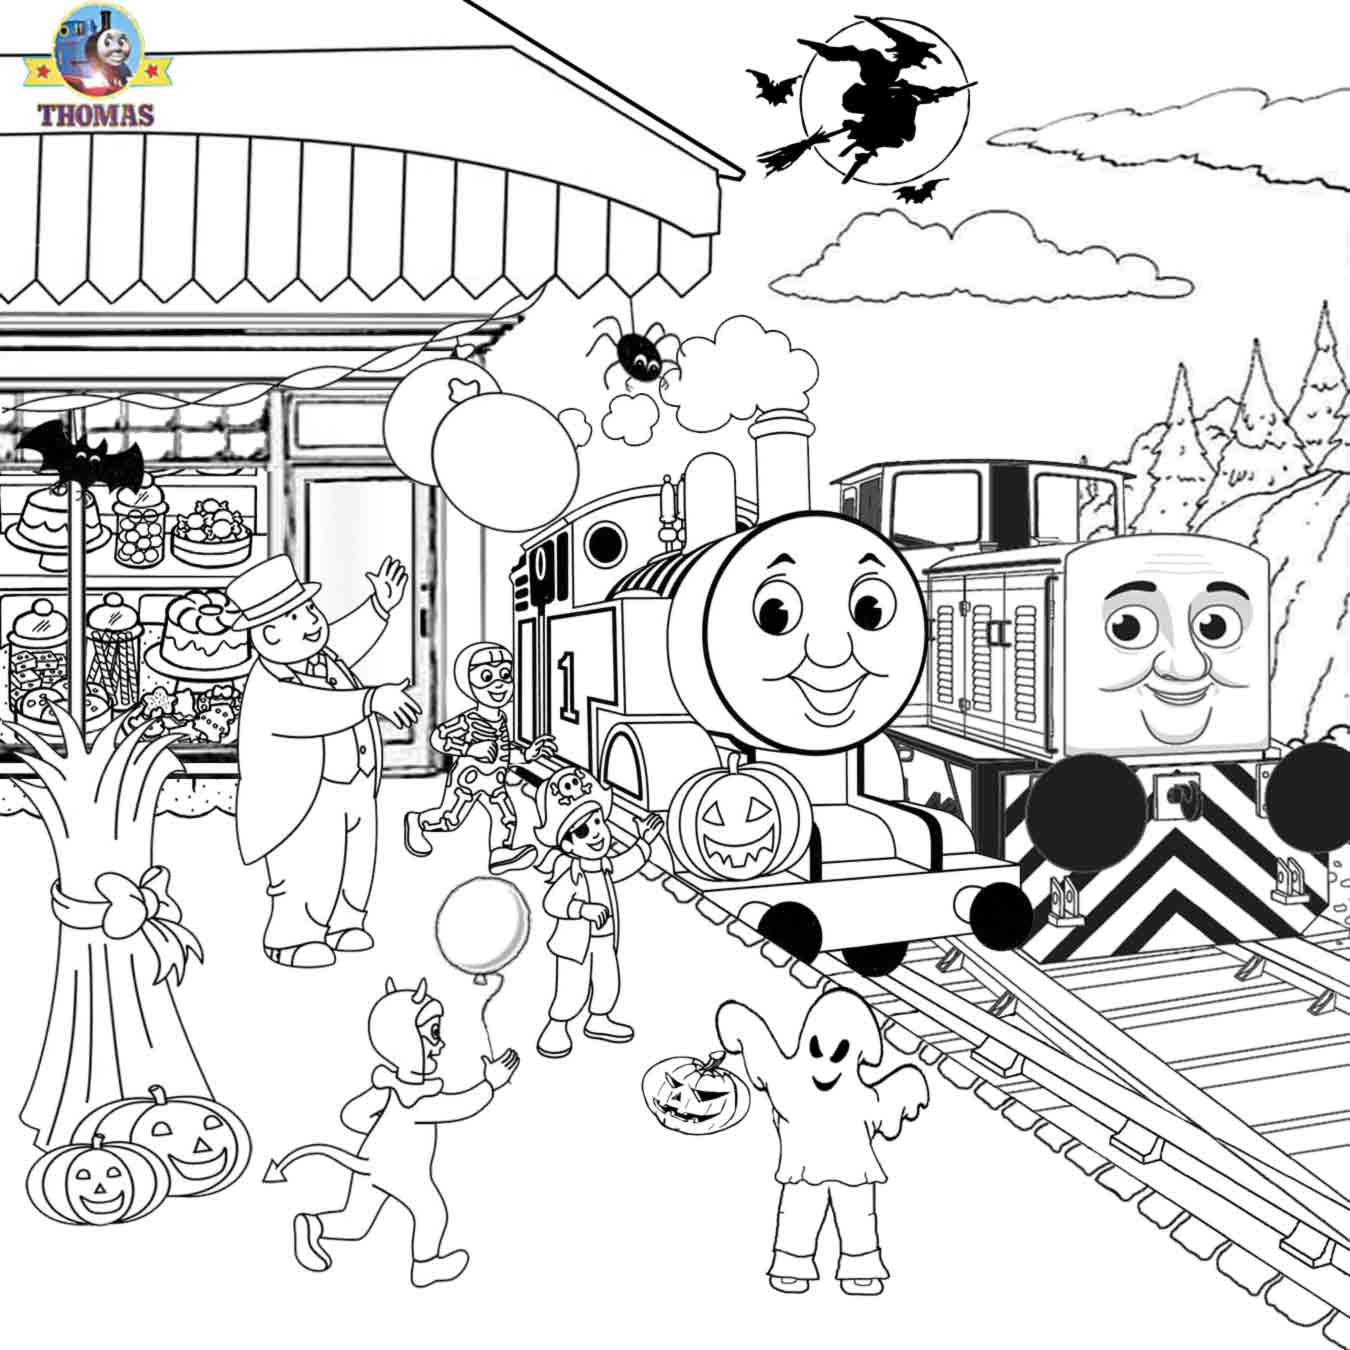 thomas and friends drawing pages thomas and friends coloring pages race for kids printable pages drawing friends and thomas